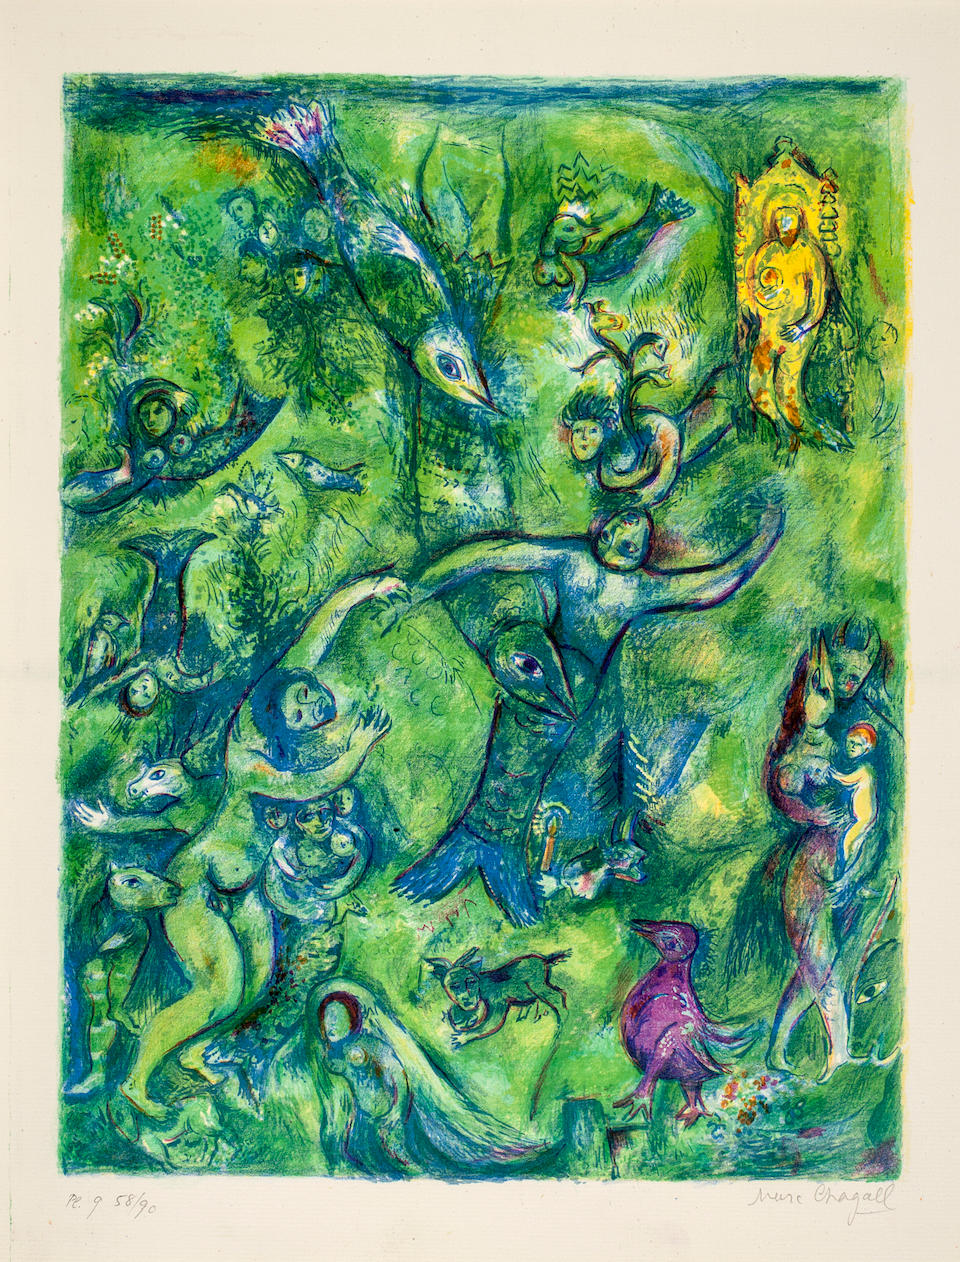 CHAGALL, MARC. RUSSIAN/FRENCH, 1887-1985. Four Tales from the Arabian Nights. New York: Pantheon Books, [1948].